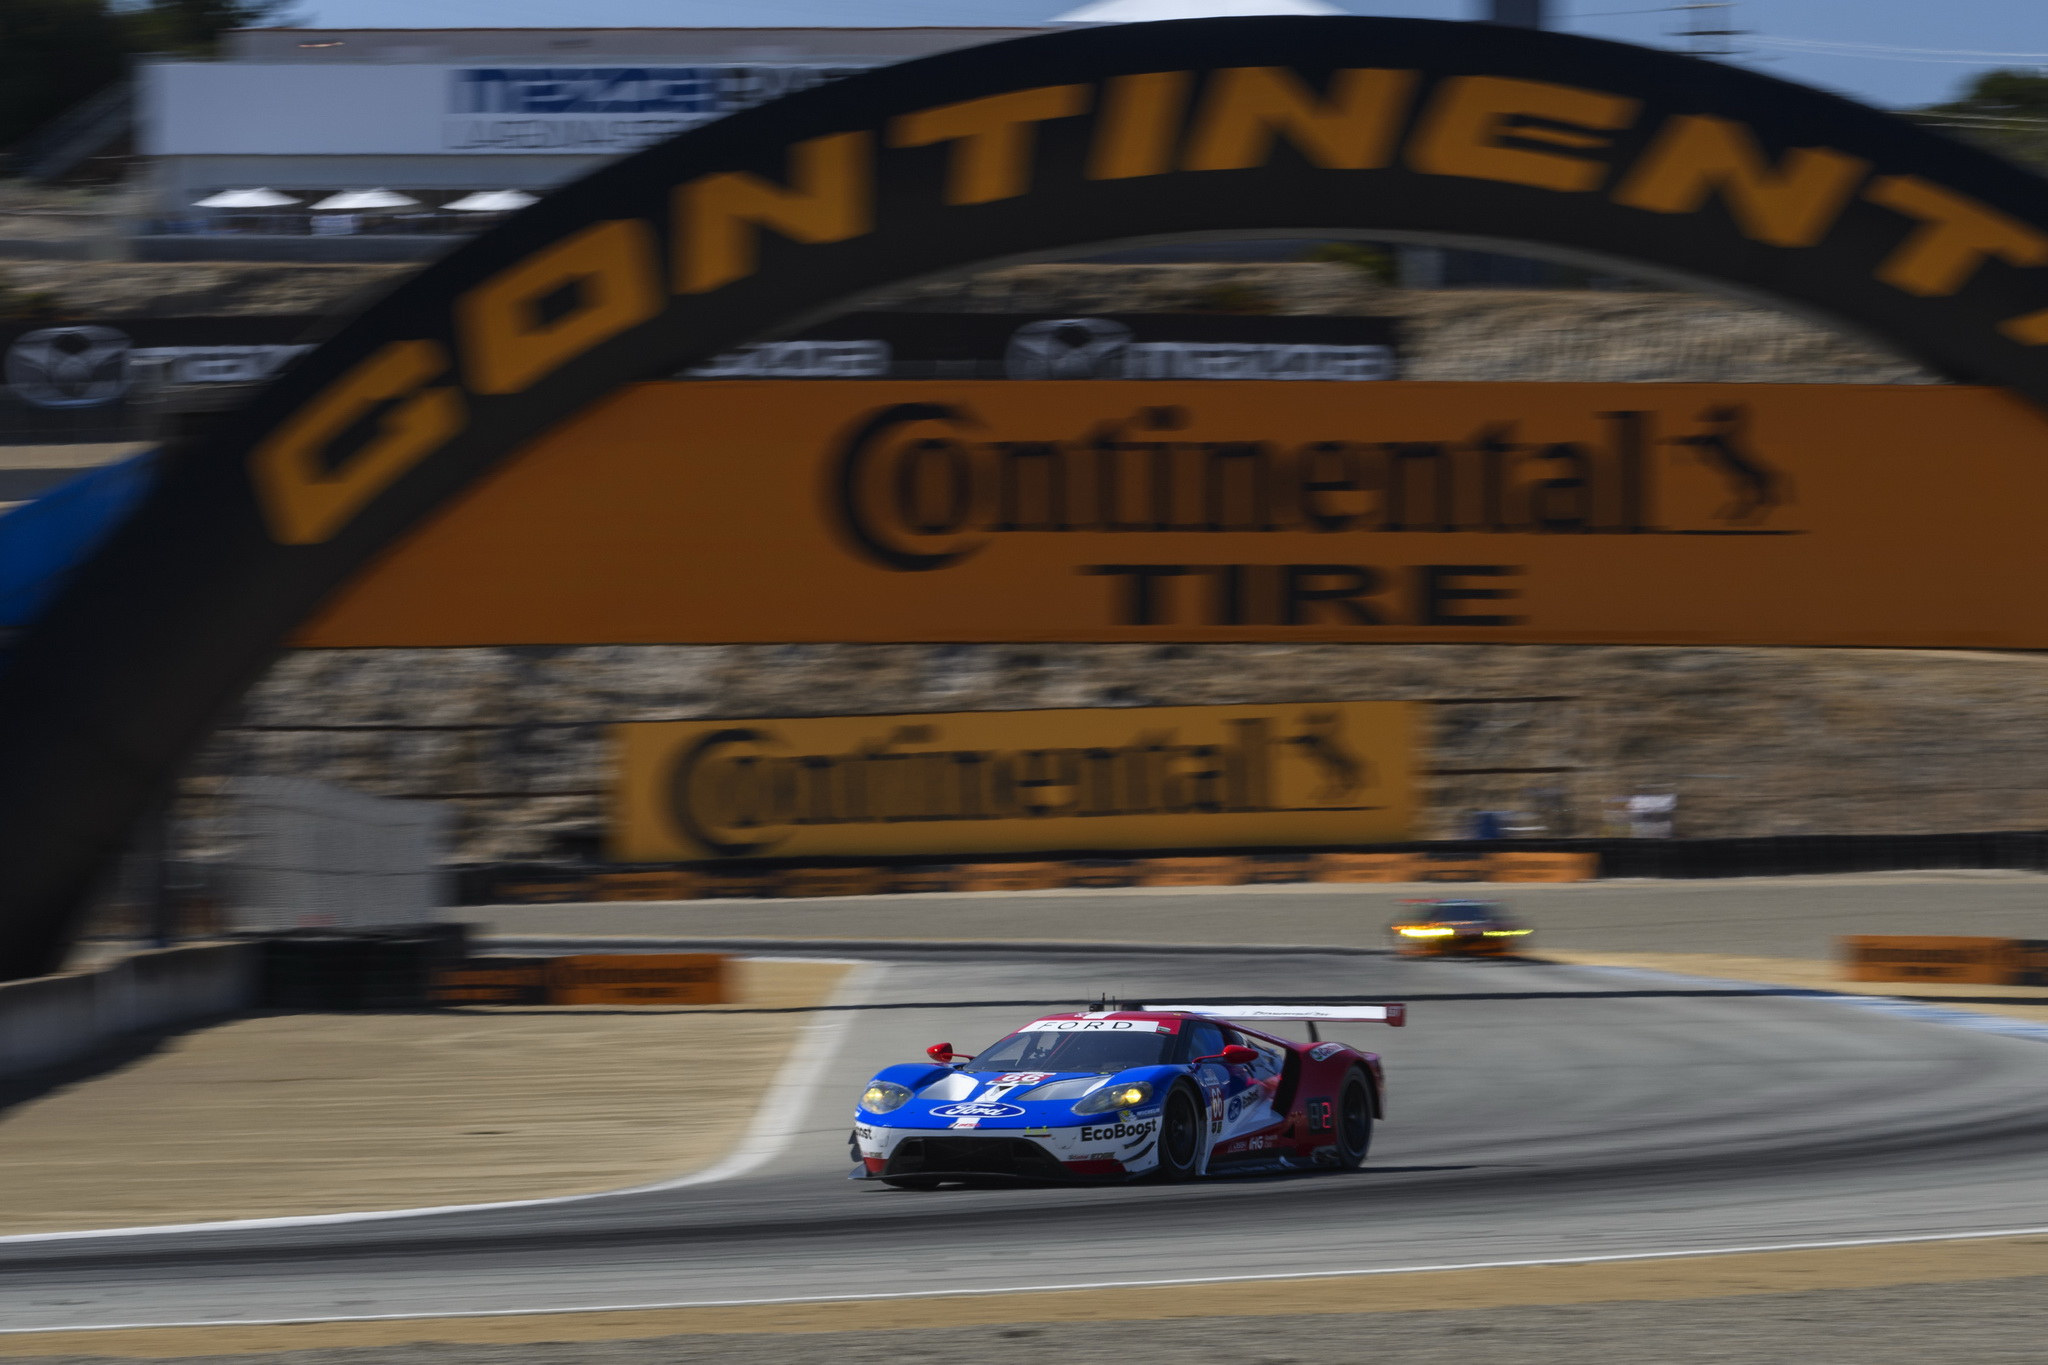 Ford Chip Ganassi Racing Qualifies p2, 5 for America's Tire 250